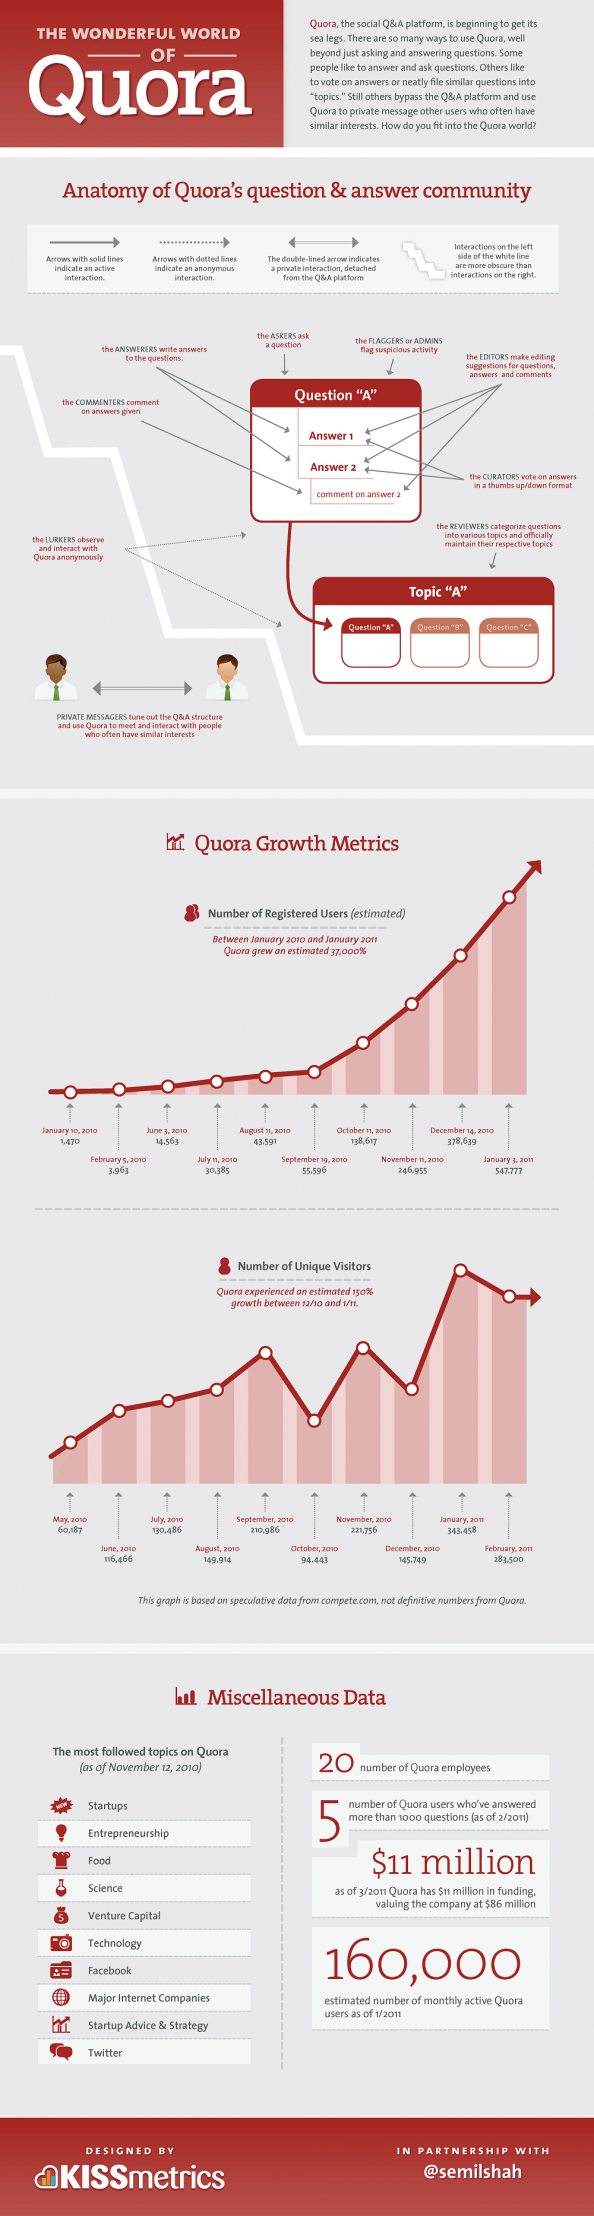 The Wonderful World of Quora Infographic